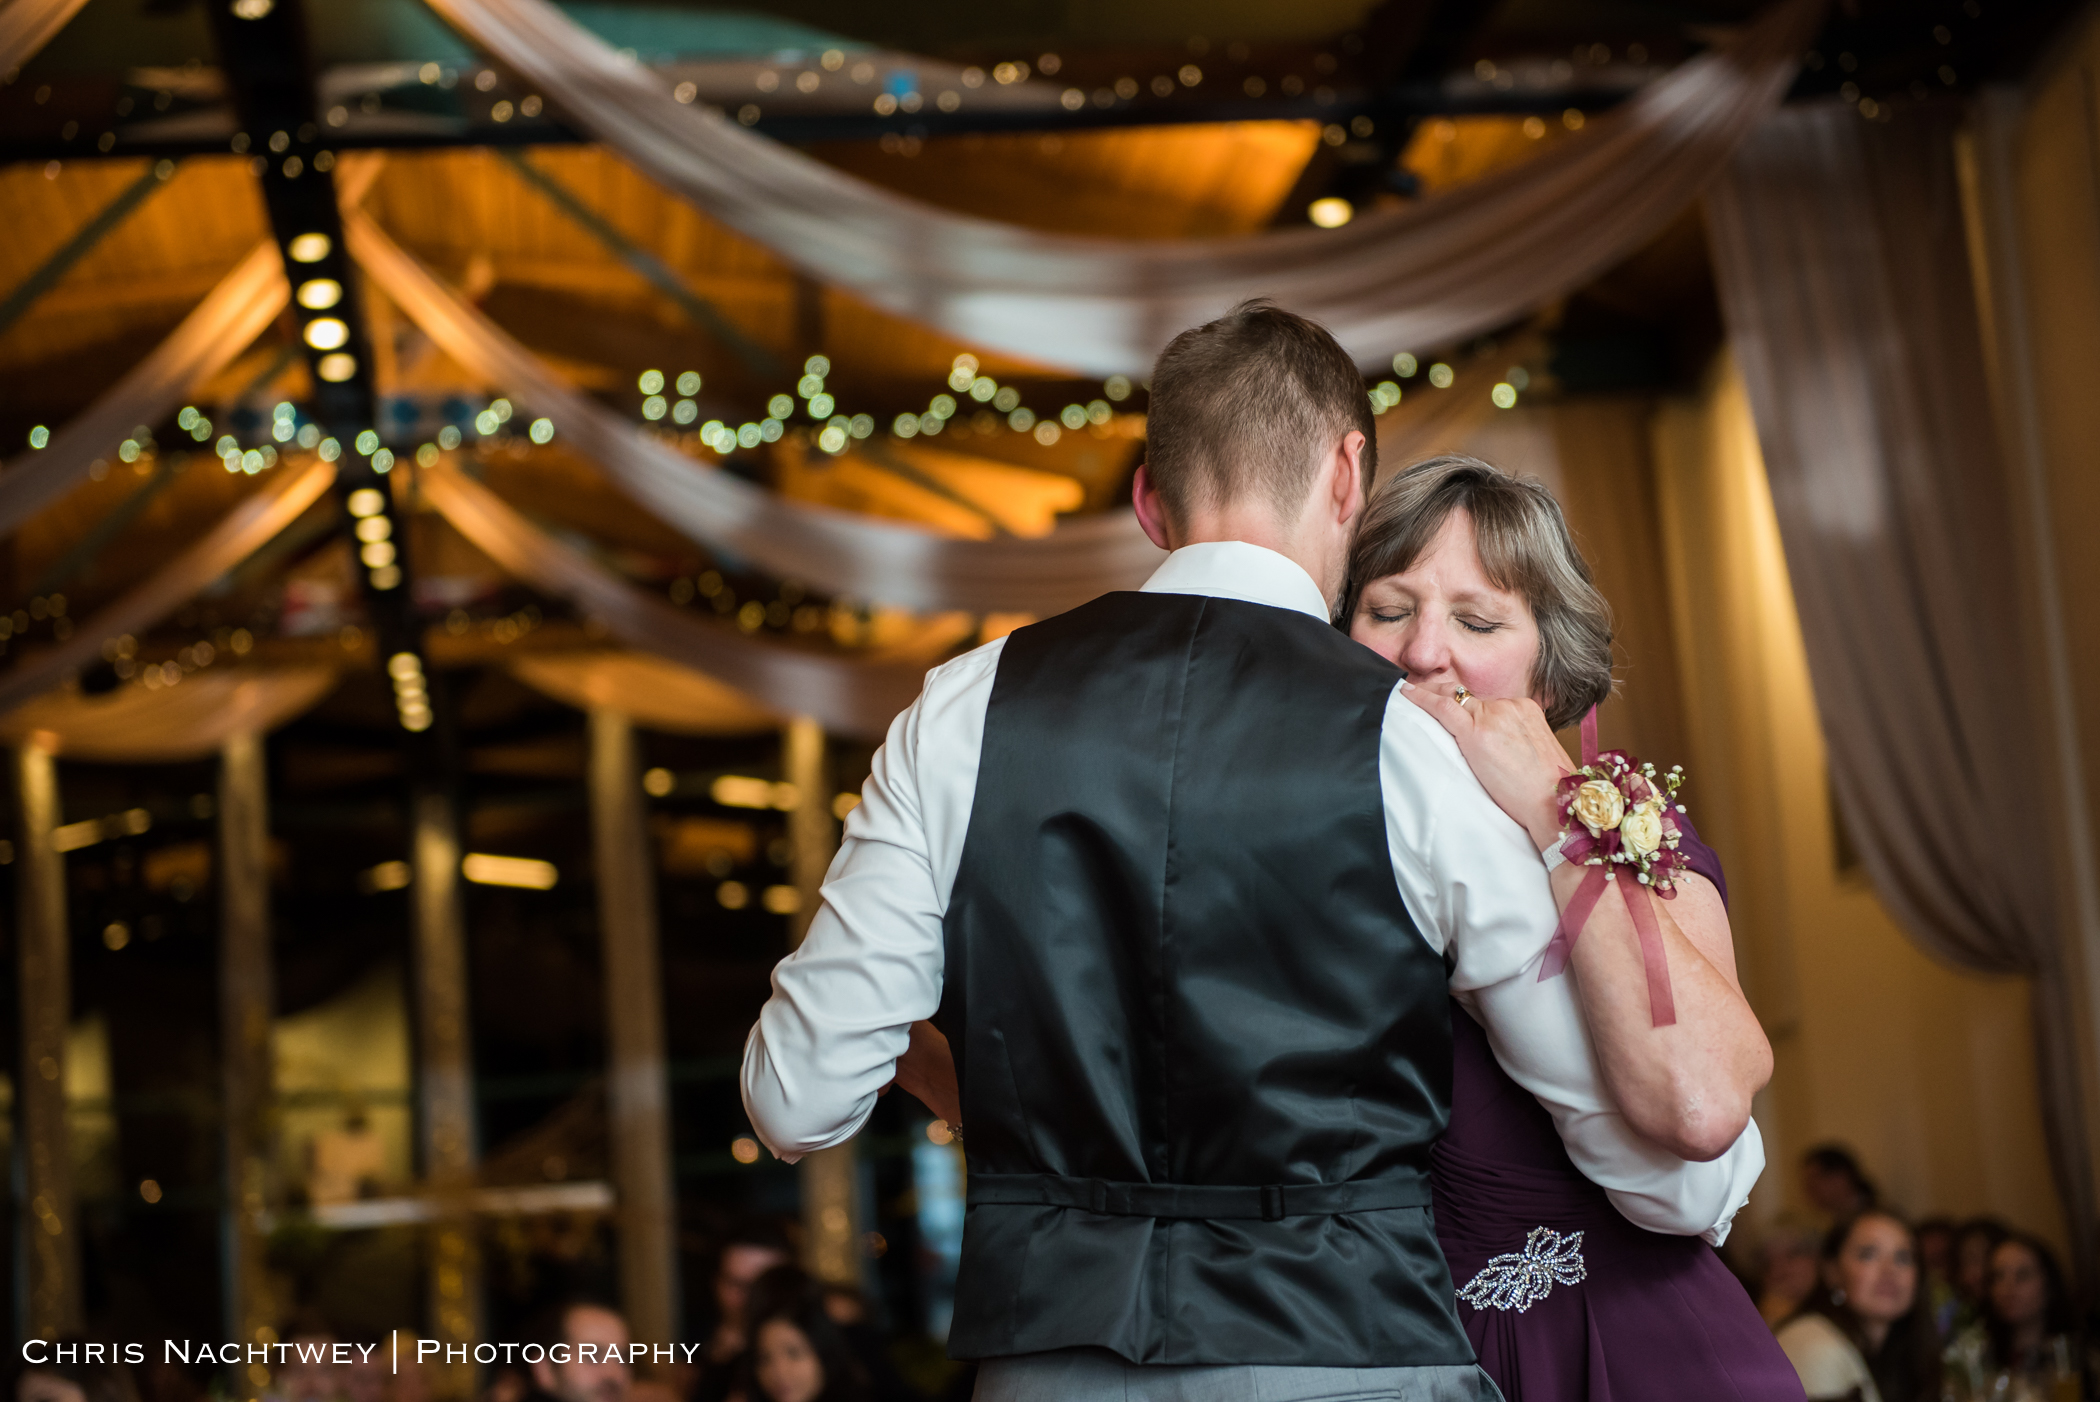 pond-house-cafe-wedding-hartford-ct-photos-chris-nachtwey-photography-2017-jackie-matt-43.jpg